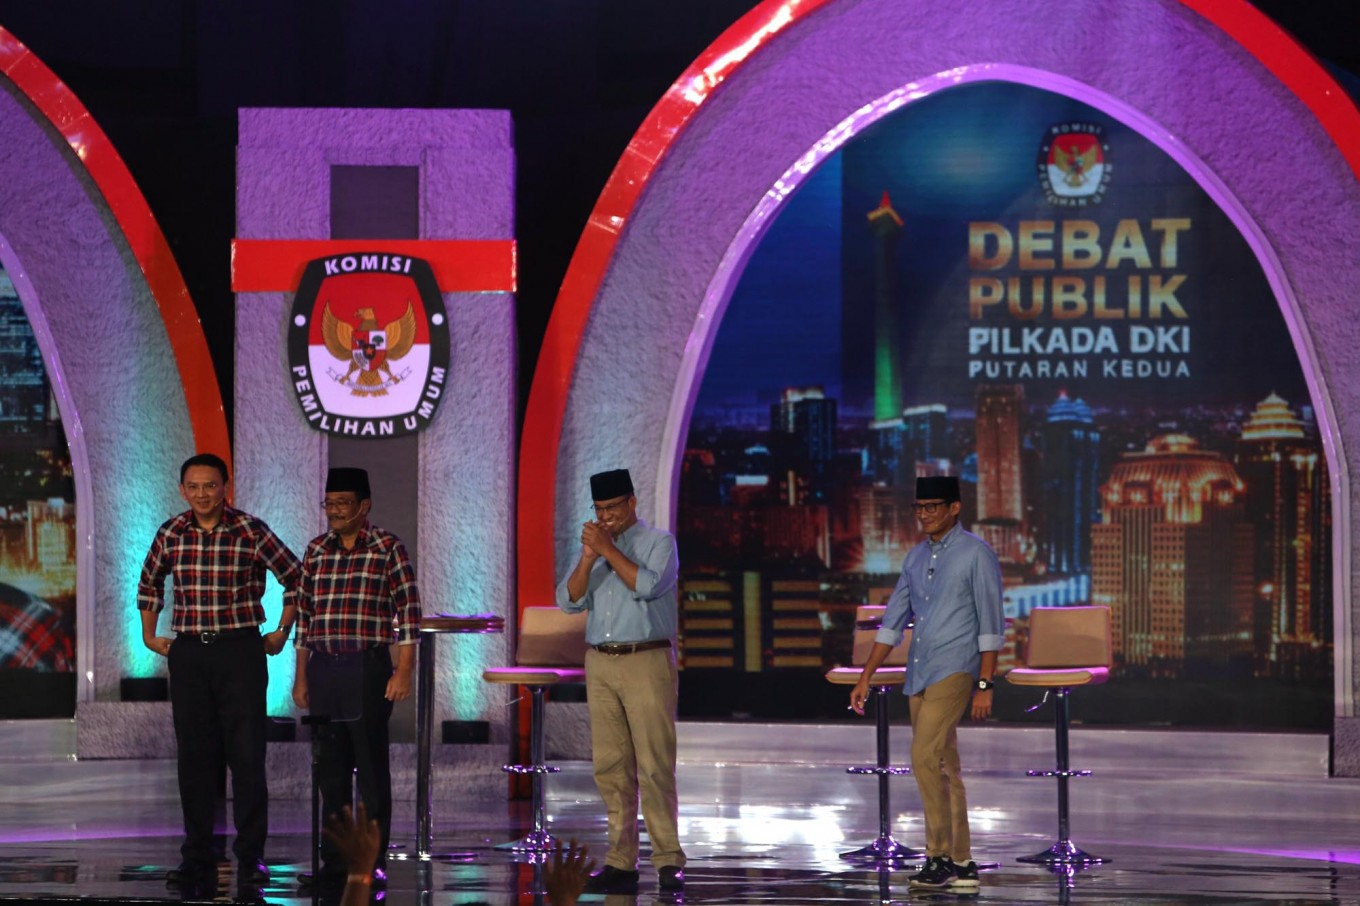 Ahok, Anies neck-to-neck in latest poll